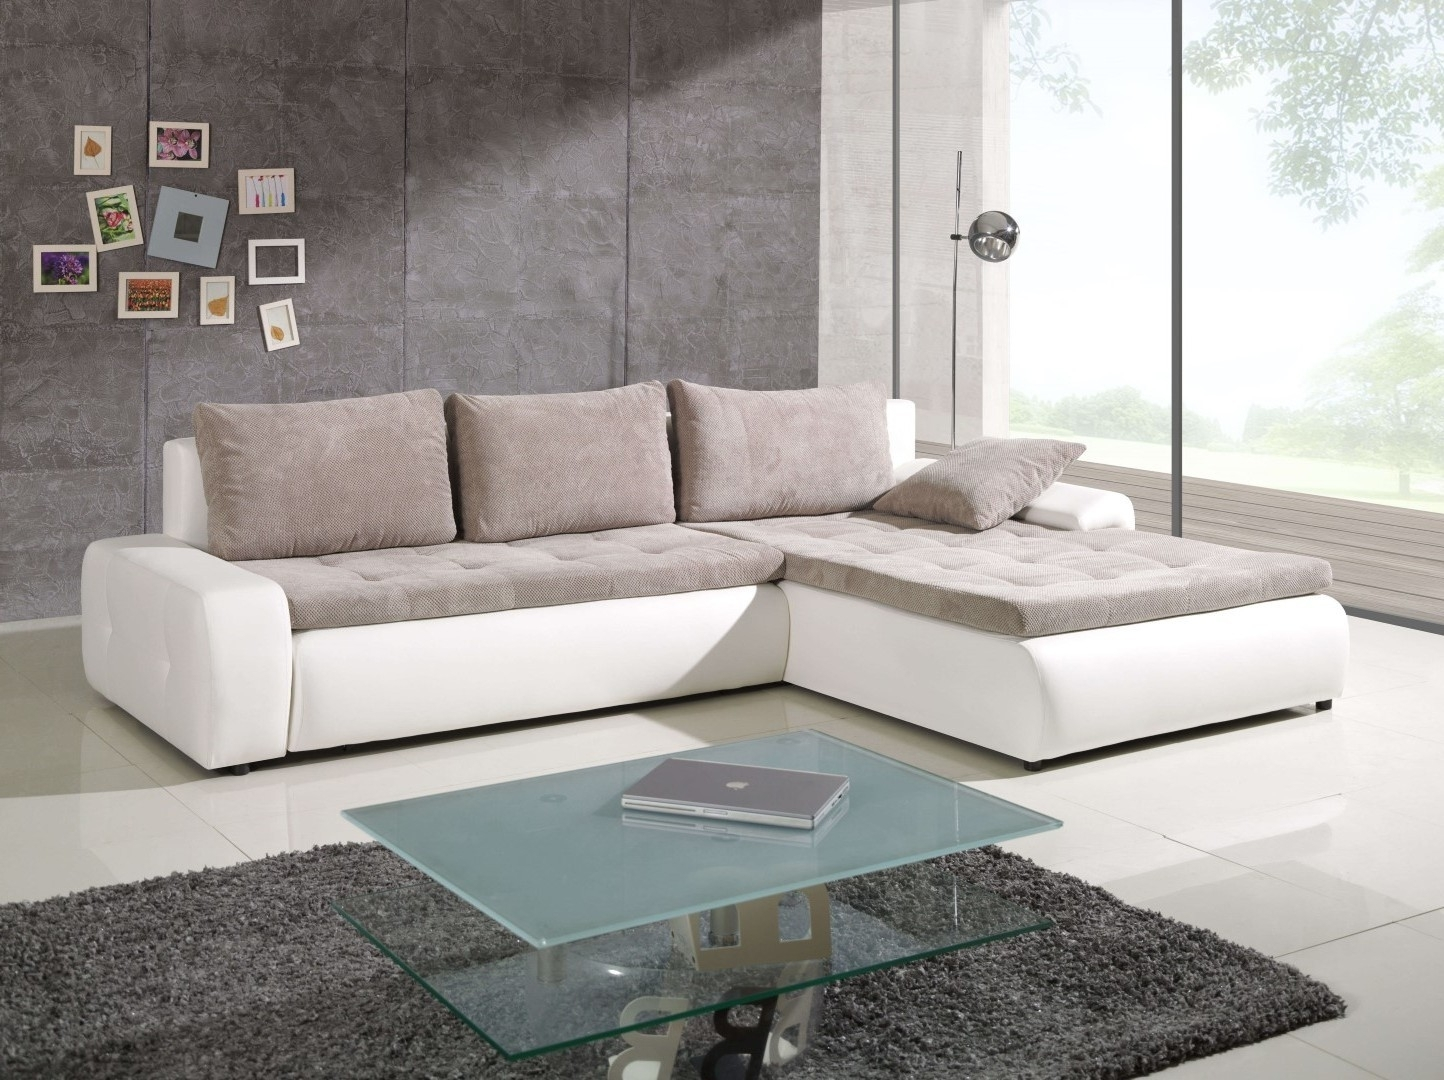 Shop Galileo Sectional Sleeper Sofa With Storage Universal Regarding Sectional Sofas With Storage (Image 9 of 10)